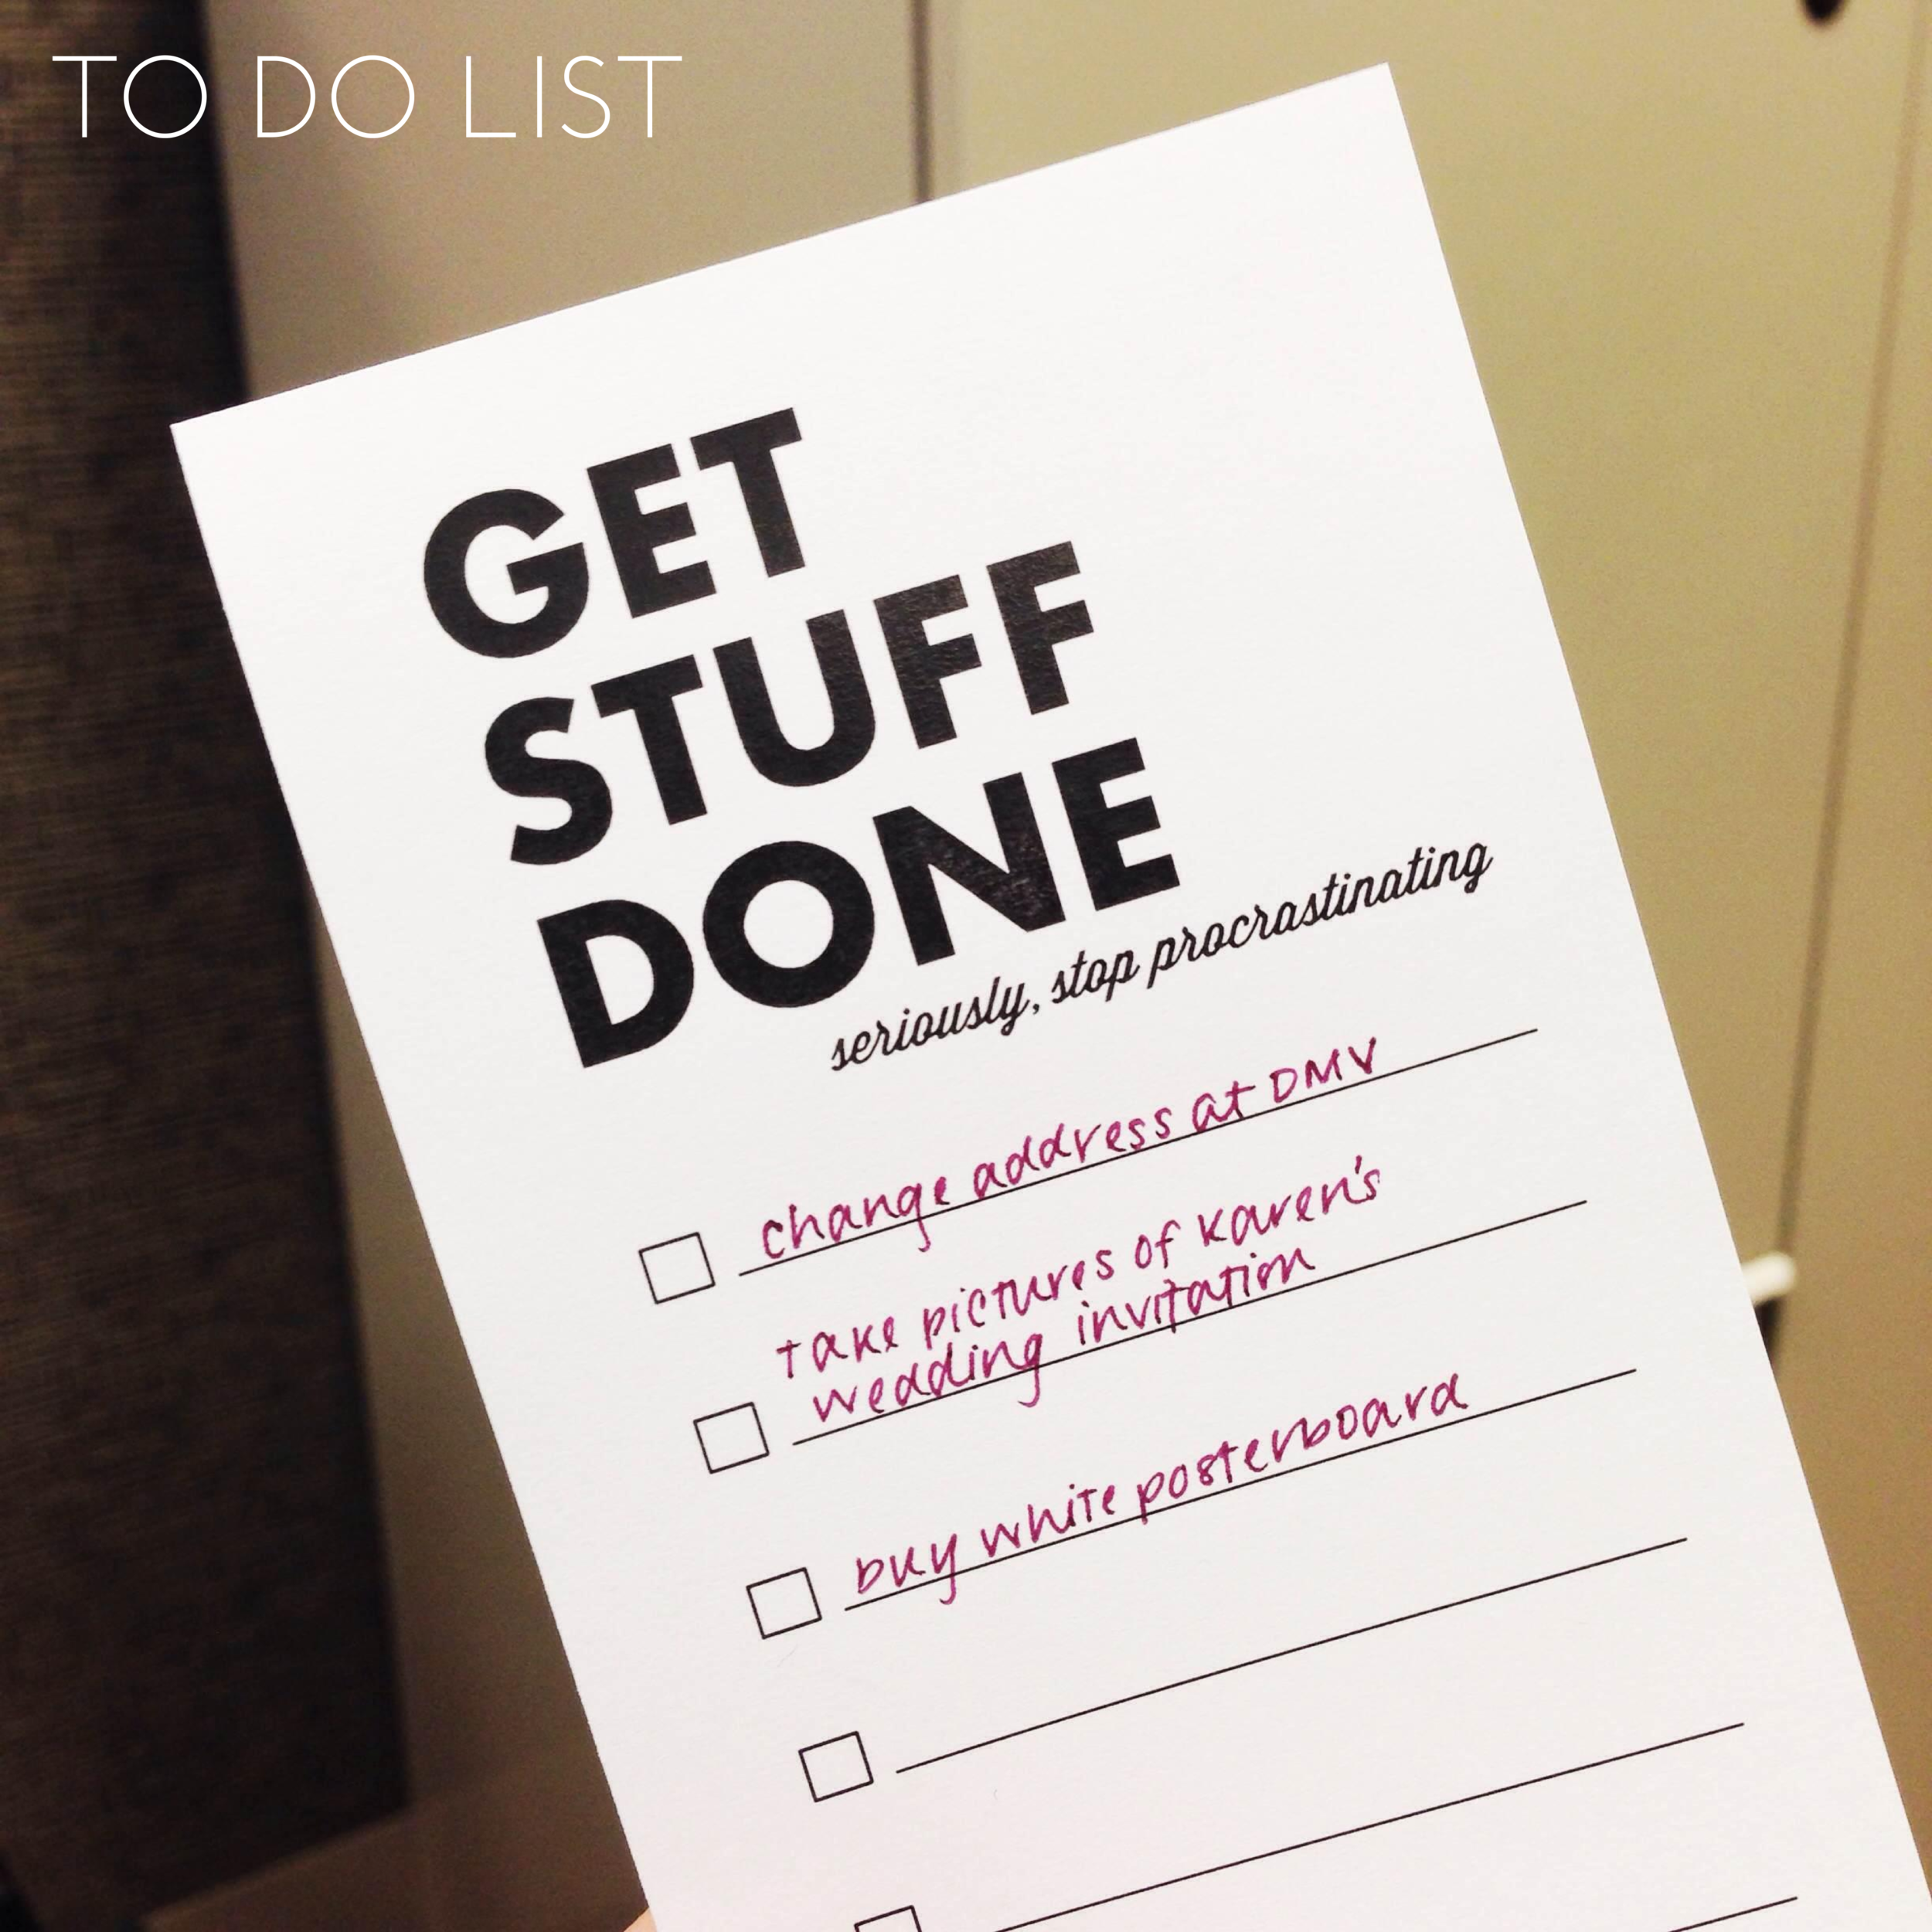 to do list.png